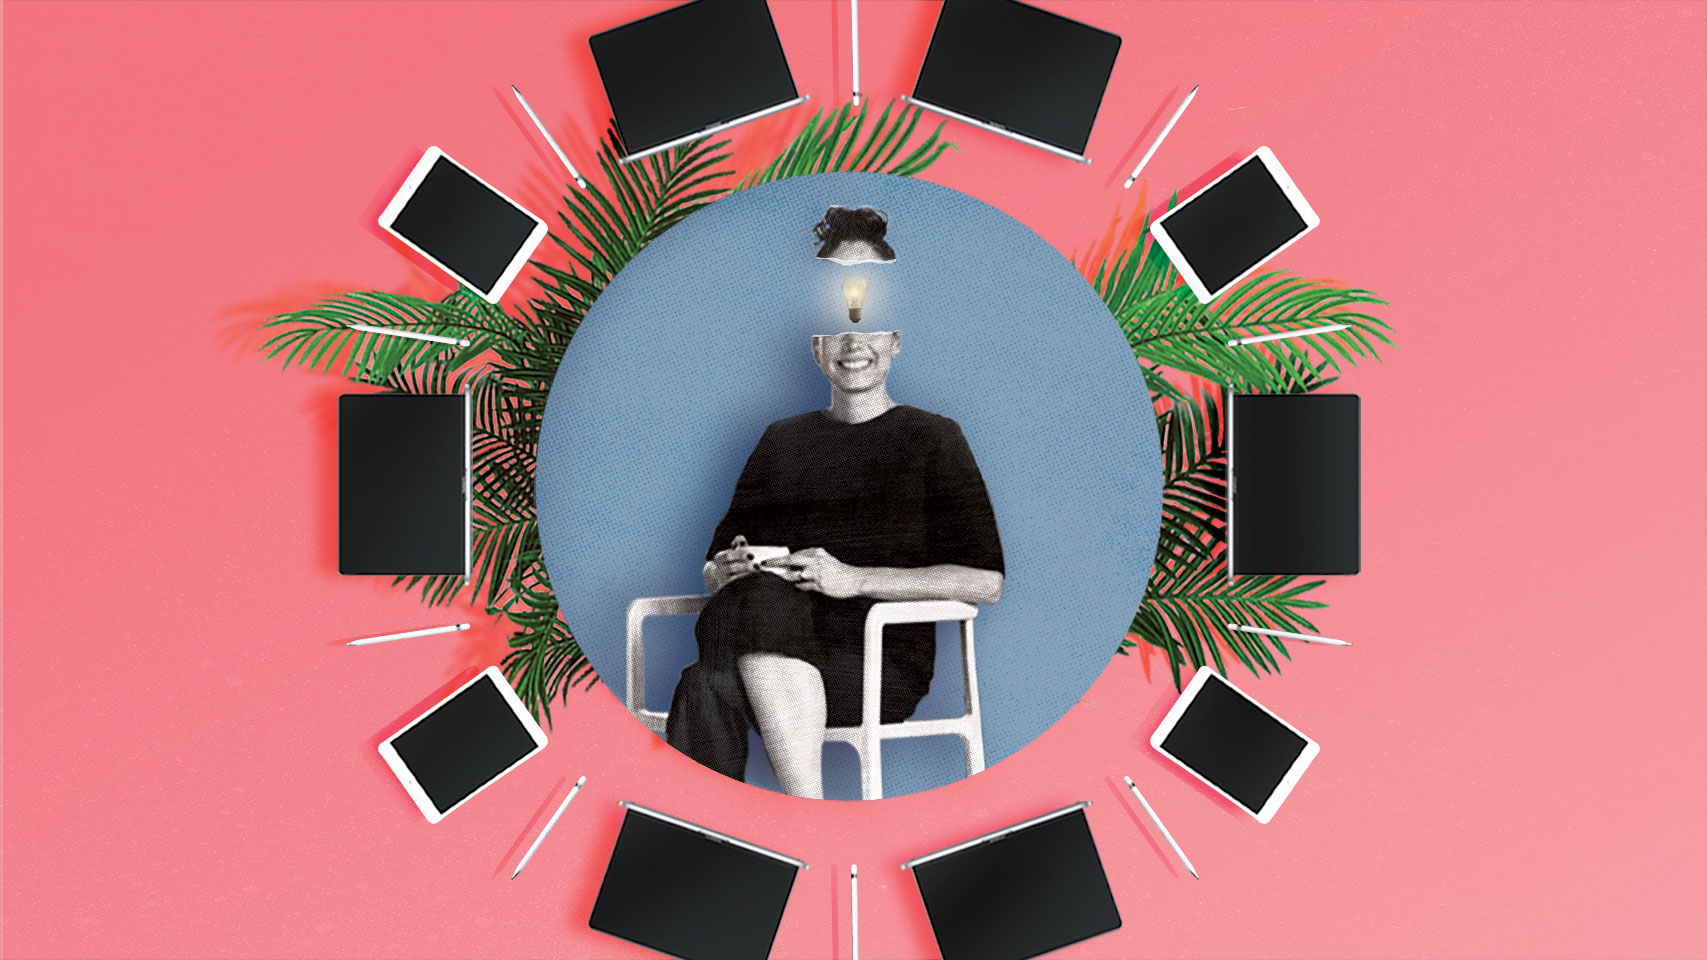 A woman in the center with a light bulb on her forehead surrounded by plants and Apple products.